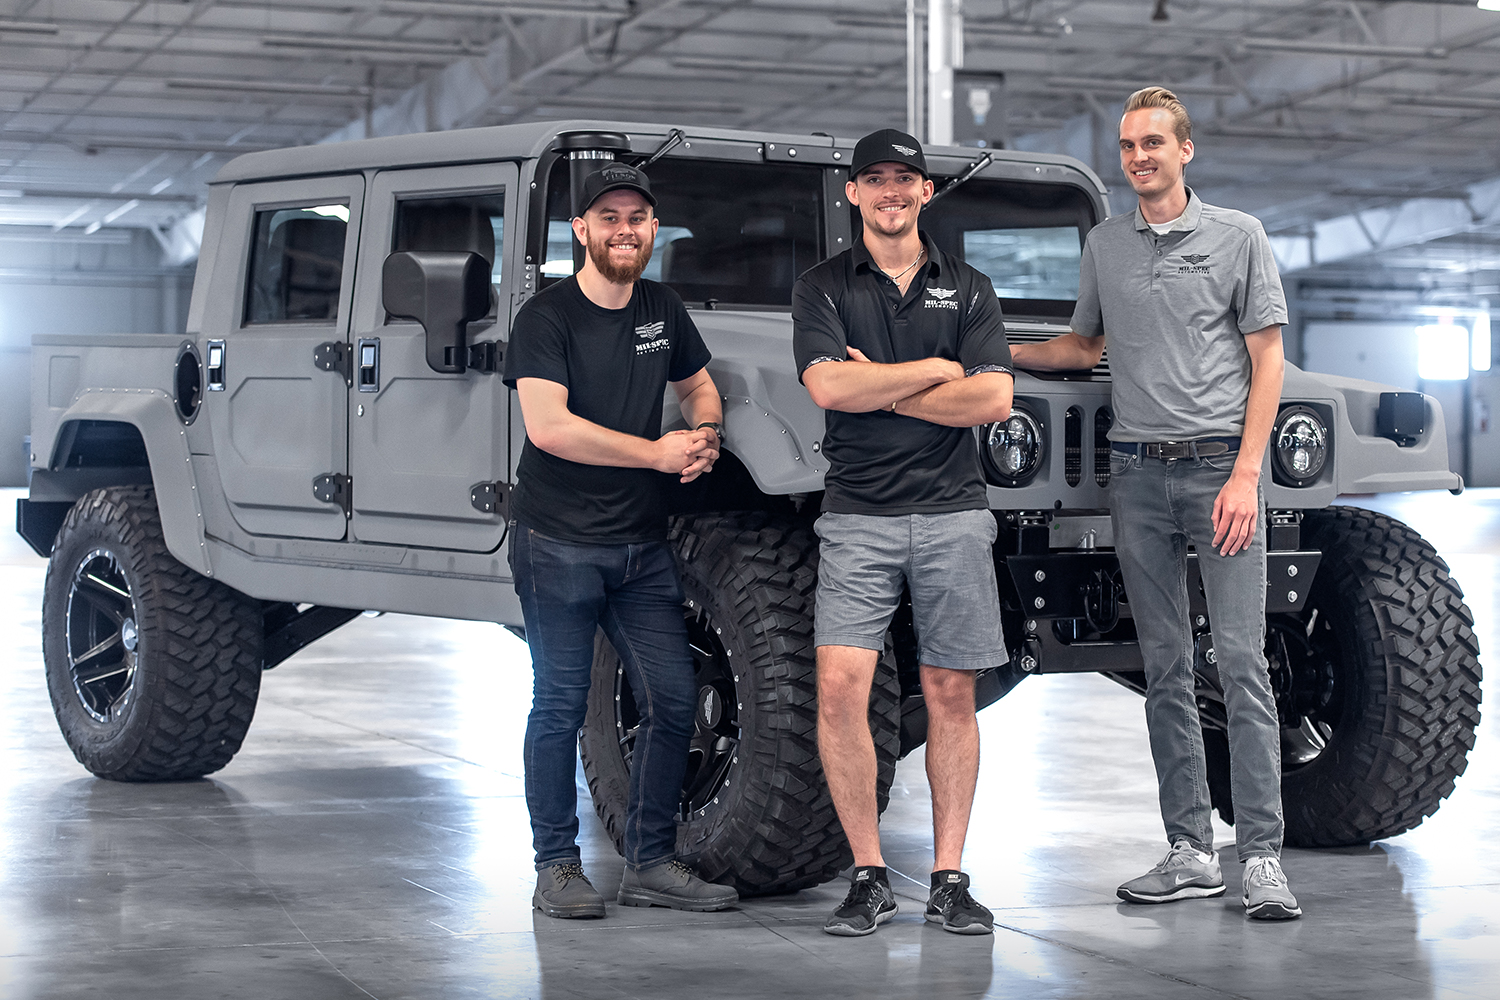 Mil-Spec Automotive Founders: Ian Broekman, Adam Mitchell, Chris Van Scyoc